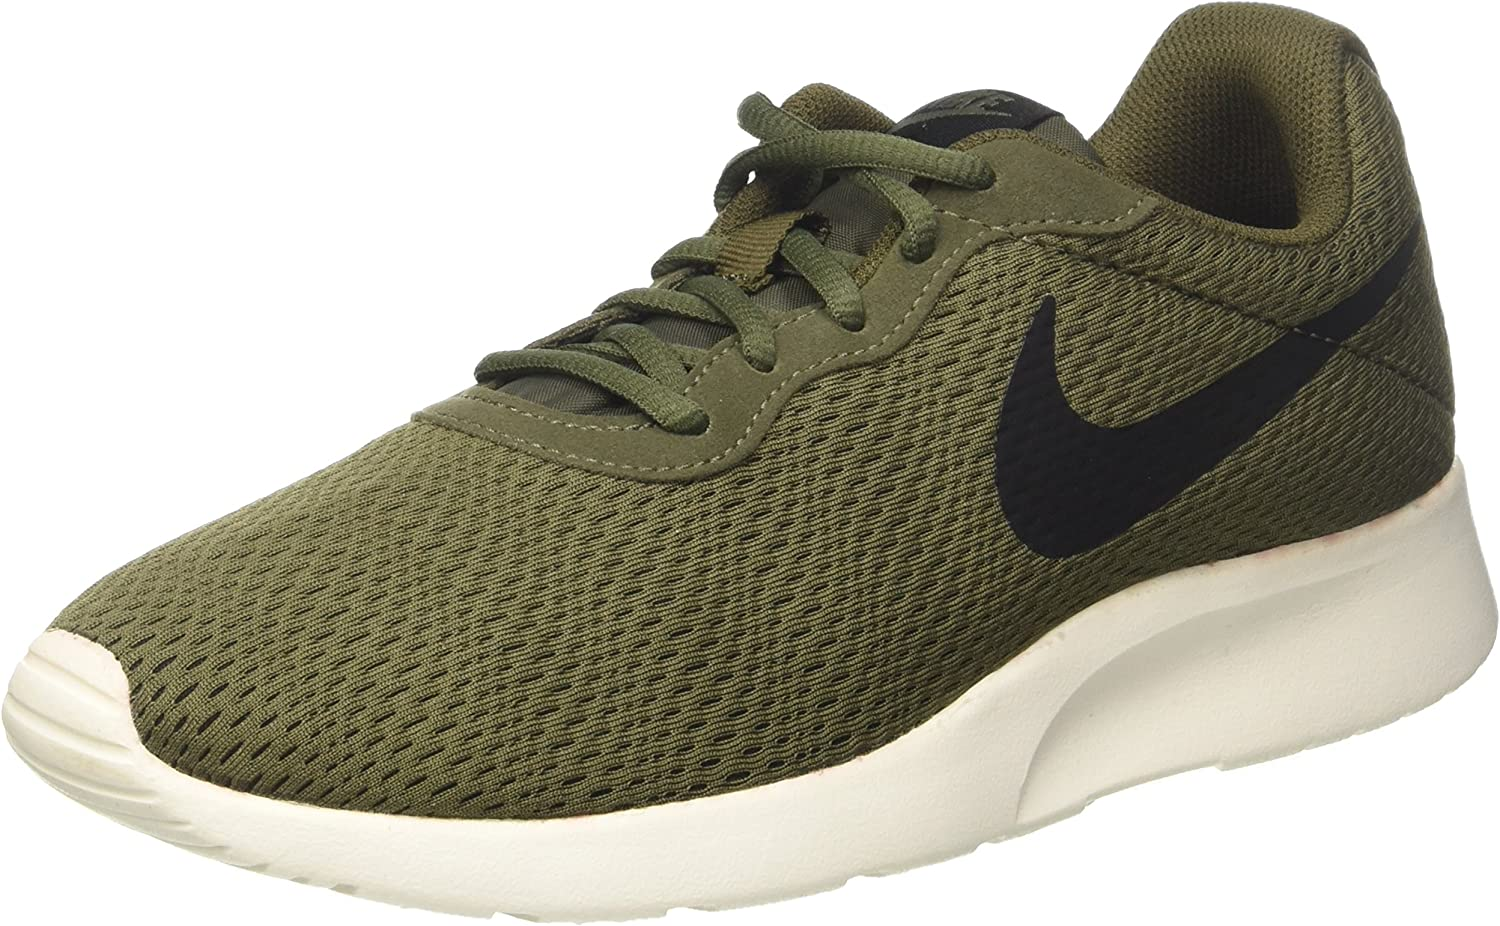 Nike Flex Fury 2 Mens Running Trainers 819134 Sneakers Shoes